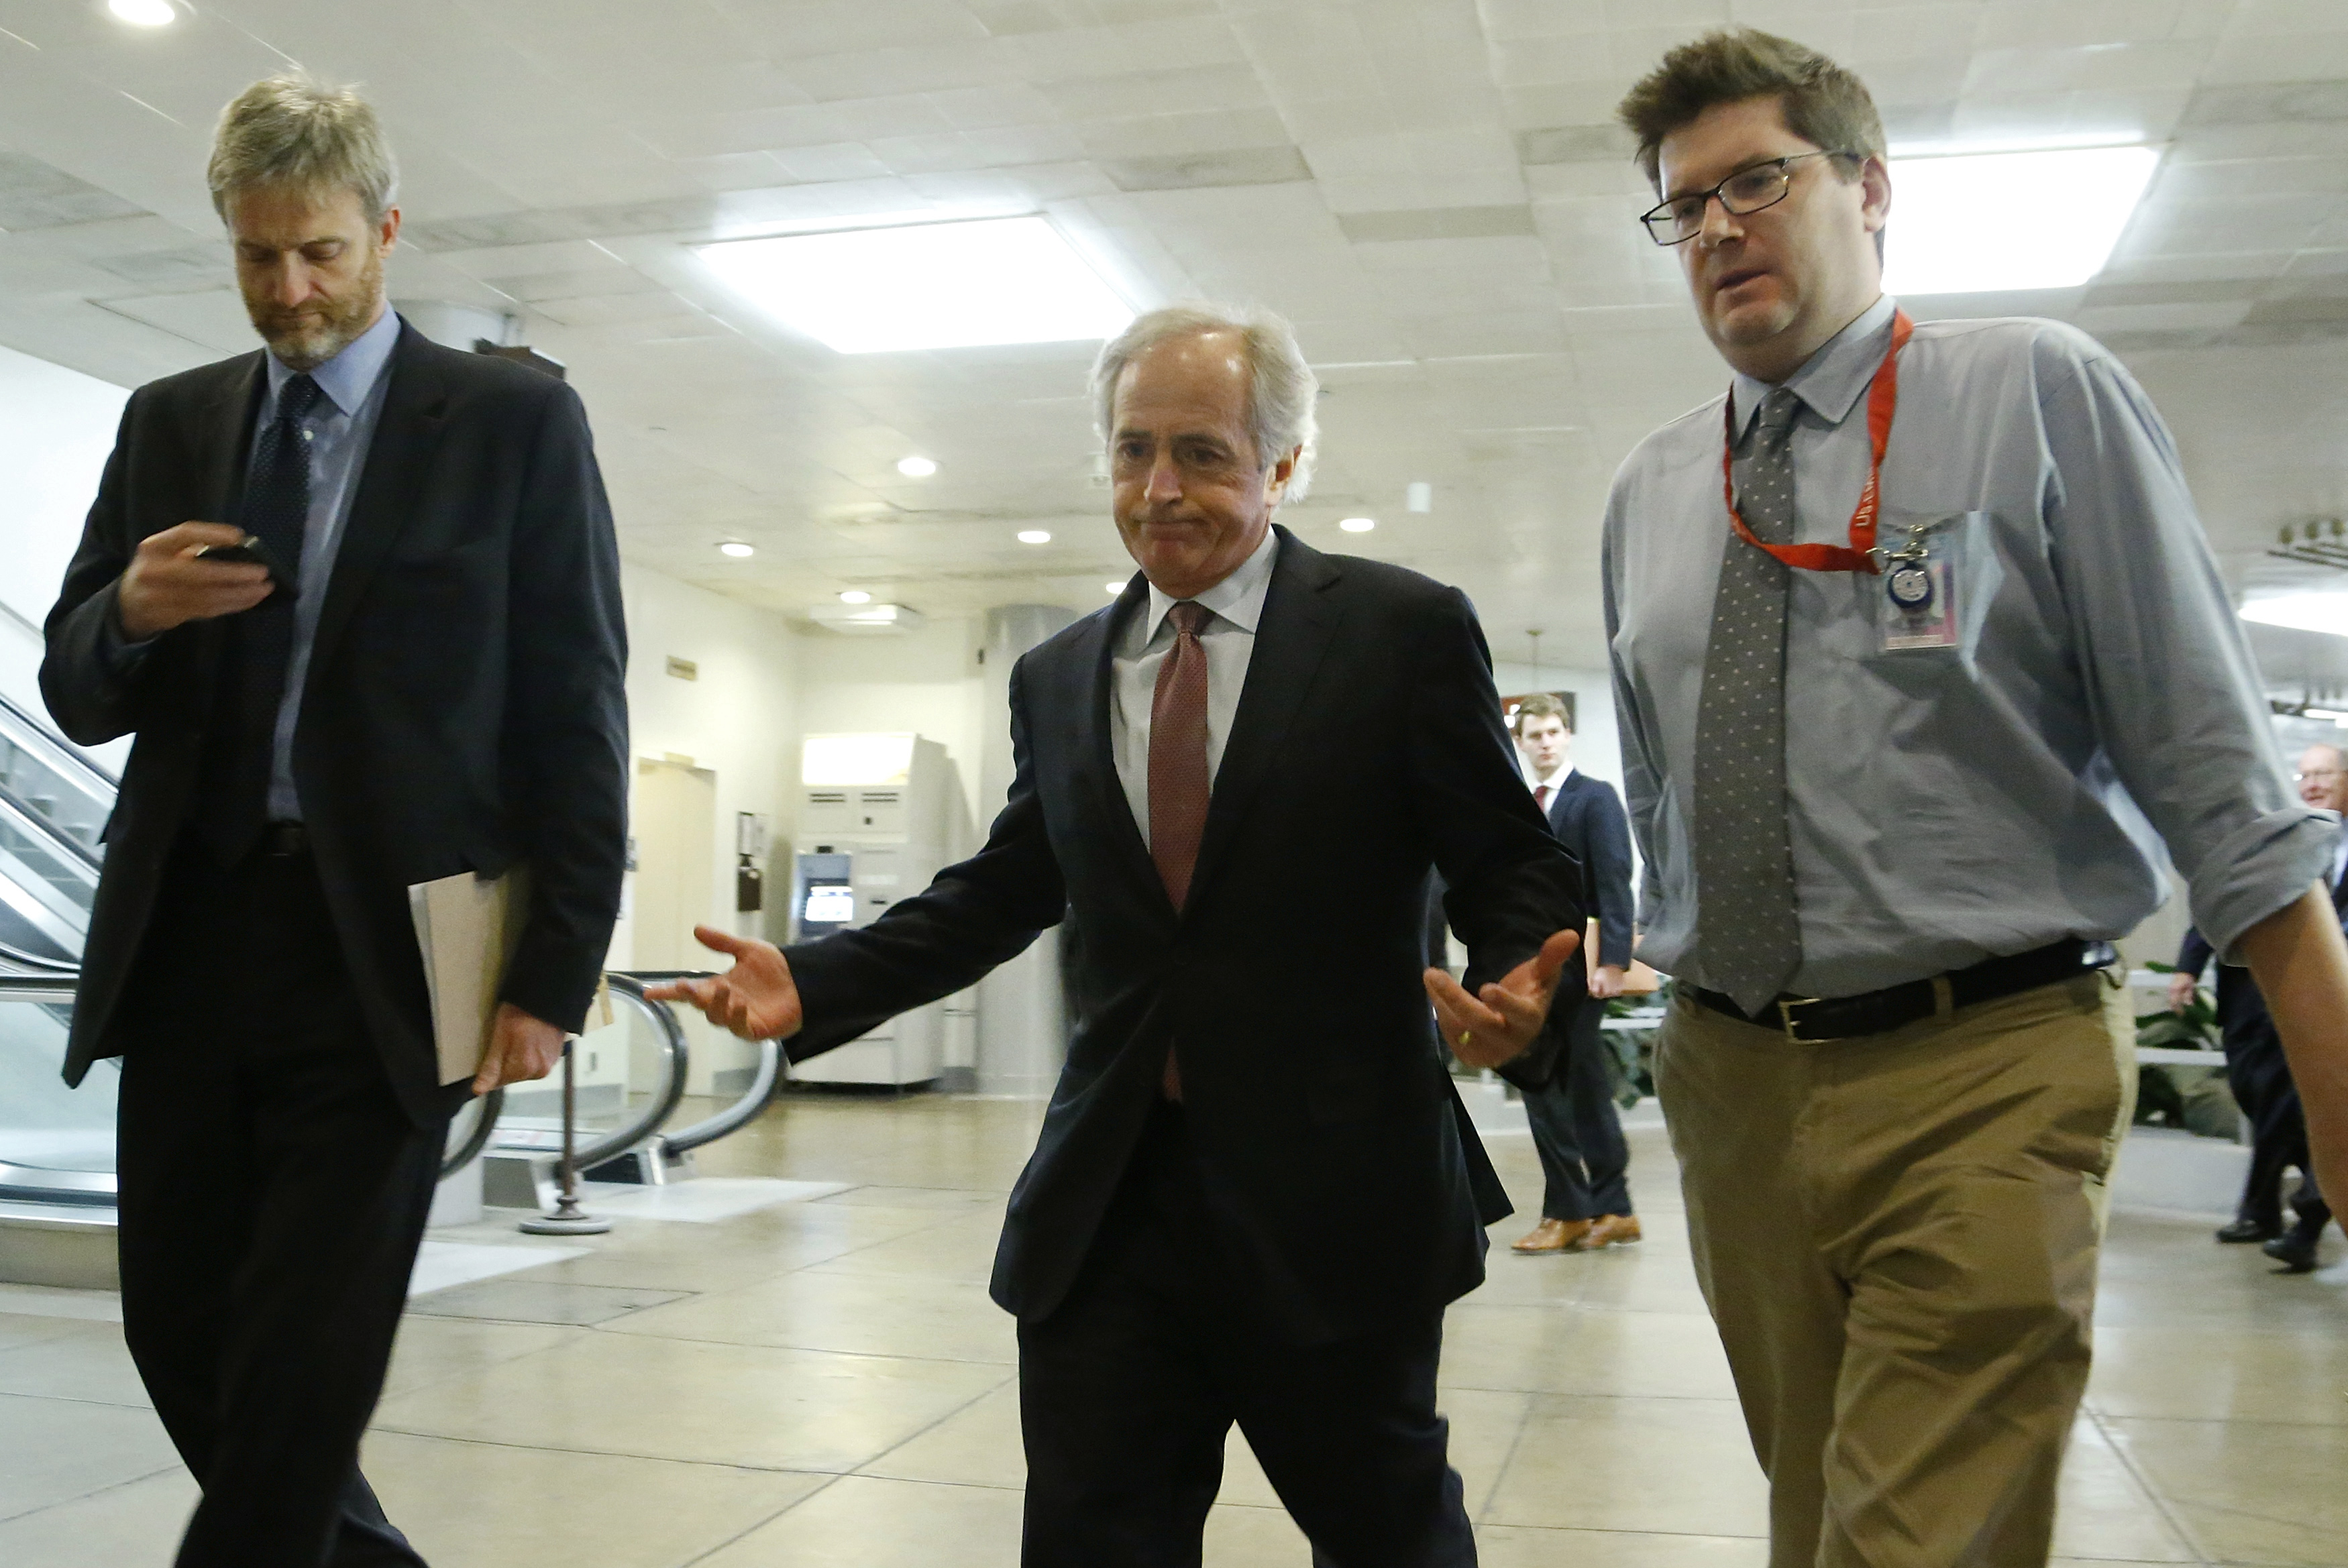 Senator Bob Corker (R-Tenn.) shrugs at a question from reporters as he walks to a closed-door briefing on talks with Iran in 2013. Corker is a leading proponent of raising gas taxes to boost the nearly-dry Highway Trust Fund.